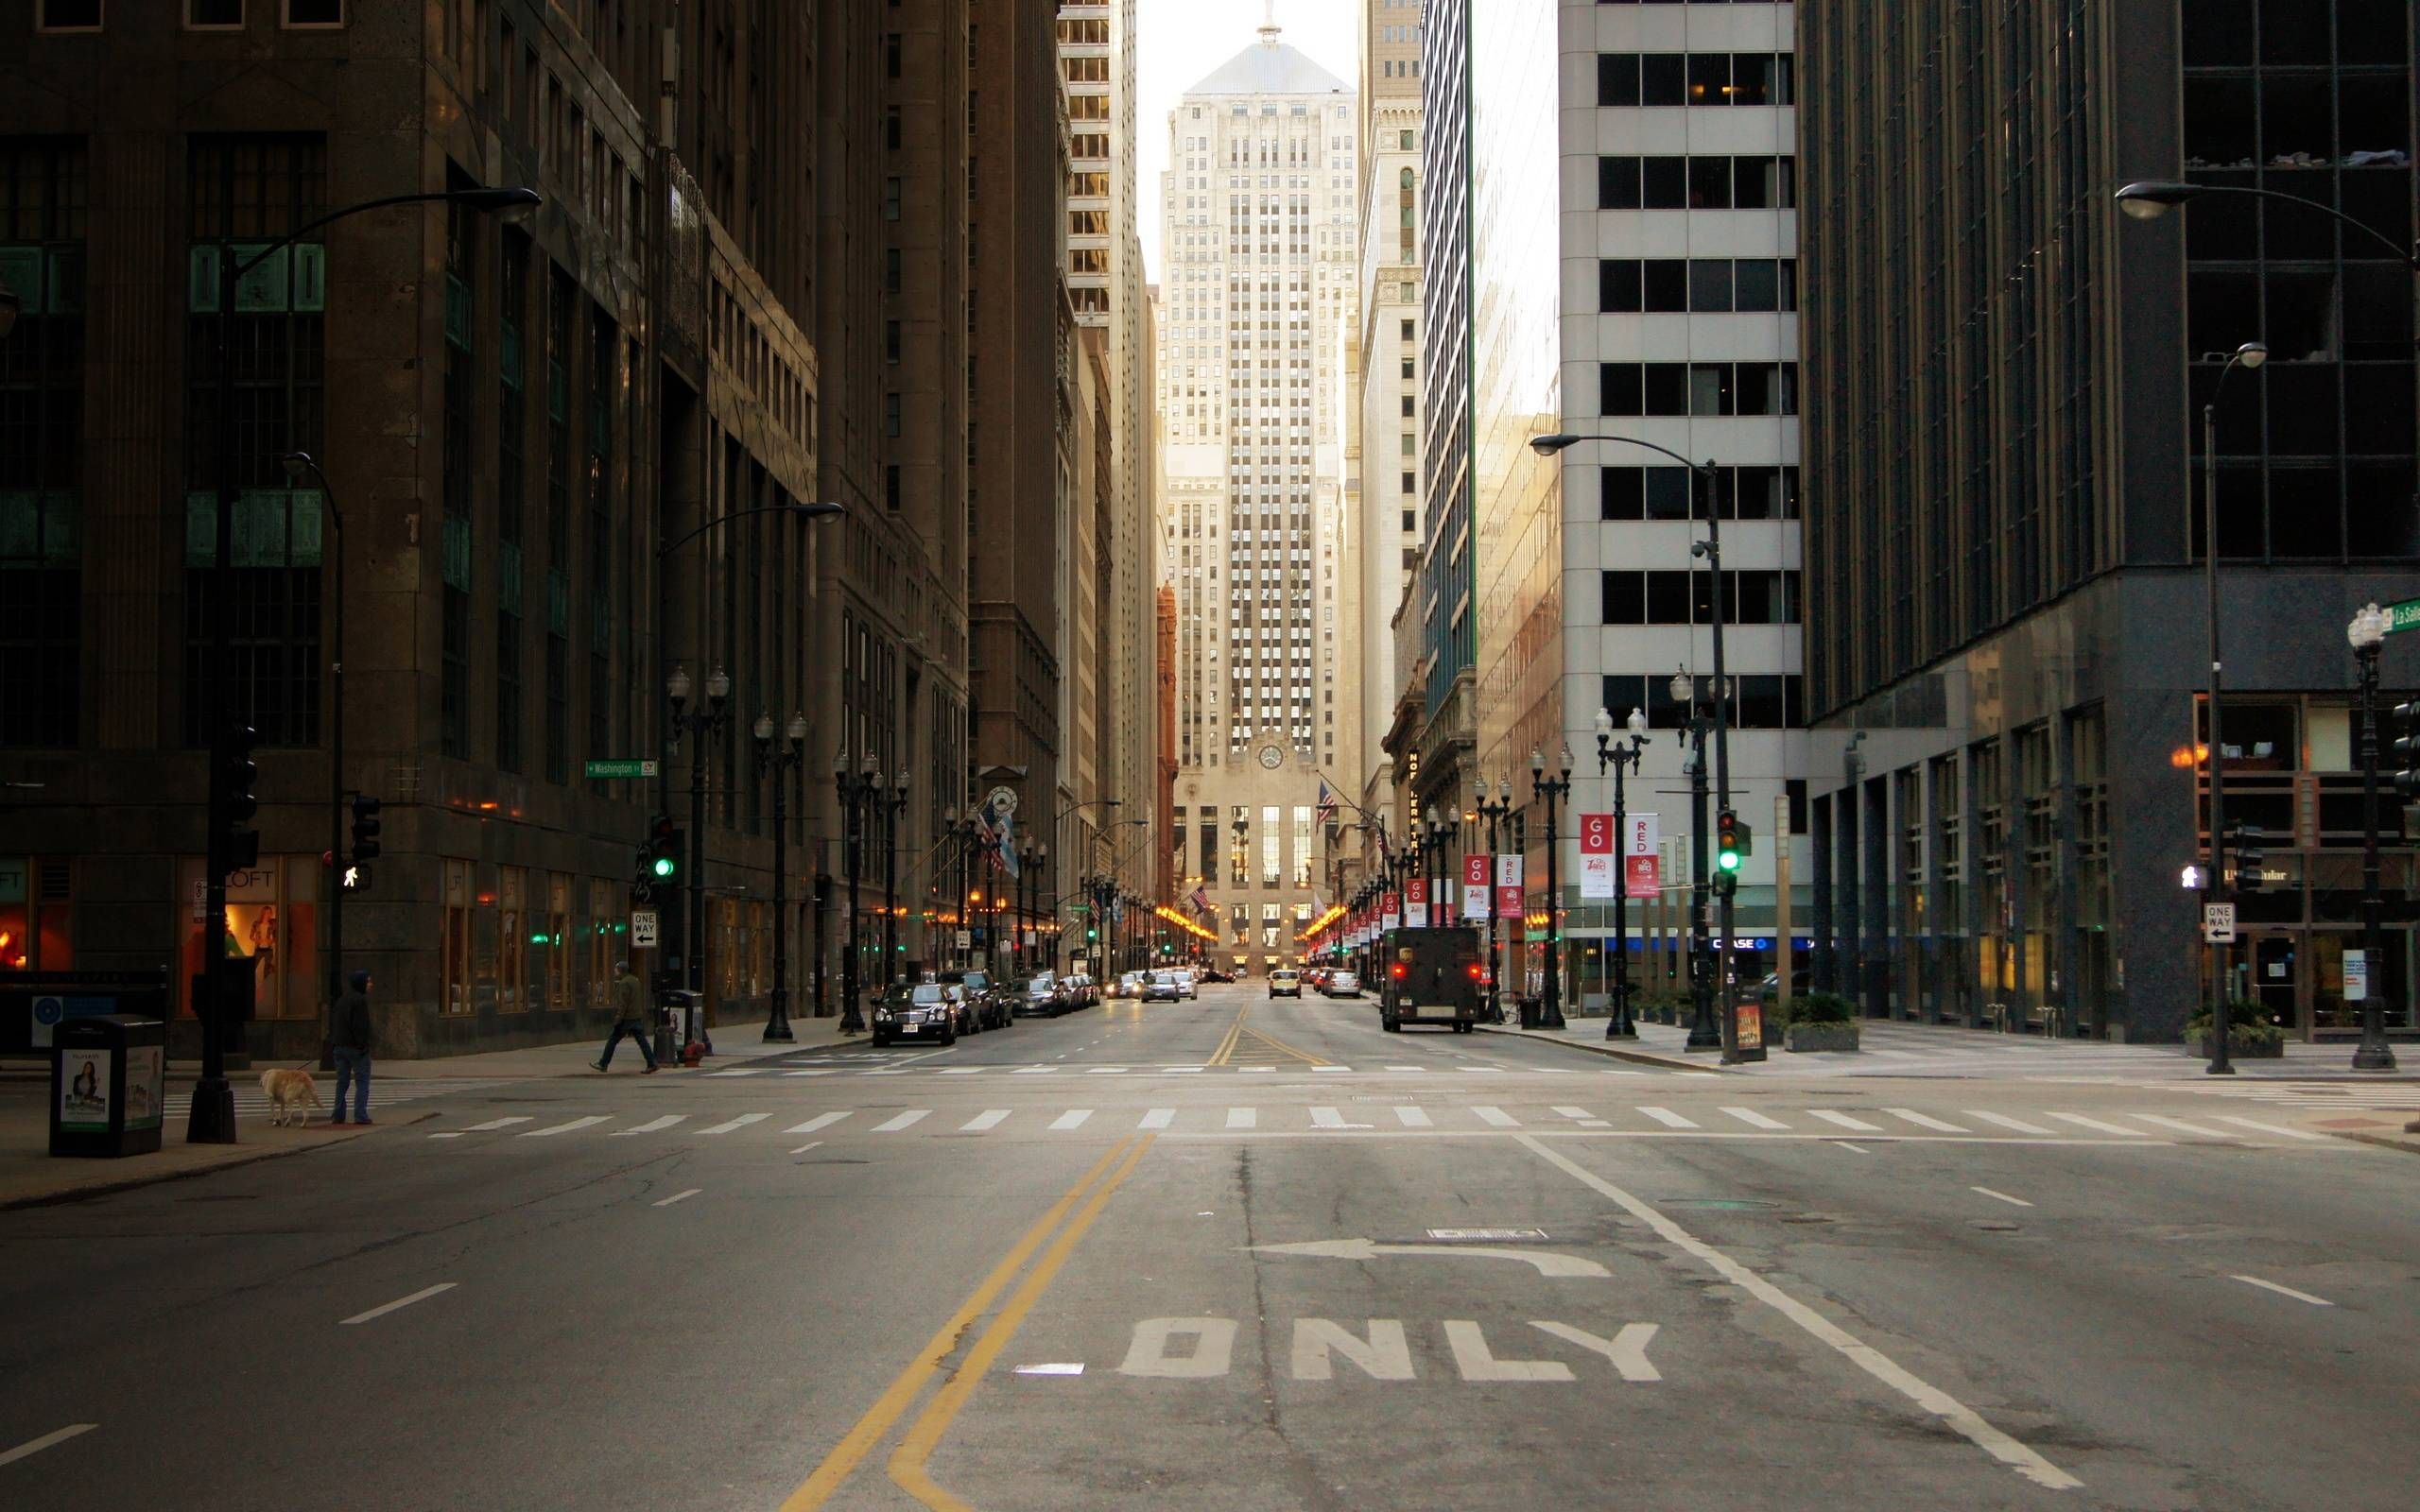 City street backgrounds wallpaper cave city street of chicago in usa skyscrapers wallpaper voltagebd Gallery